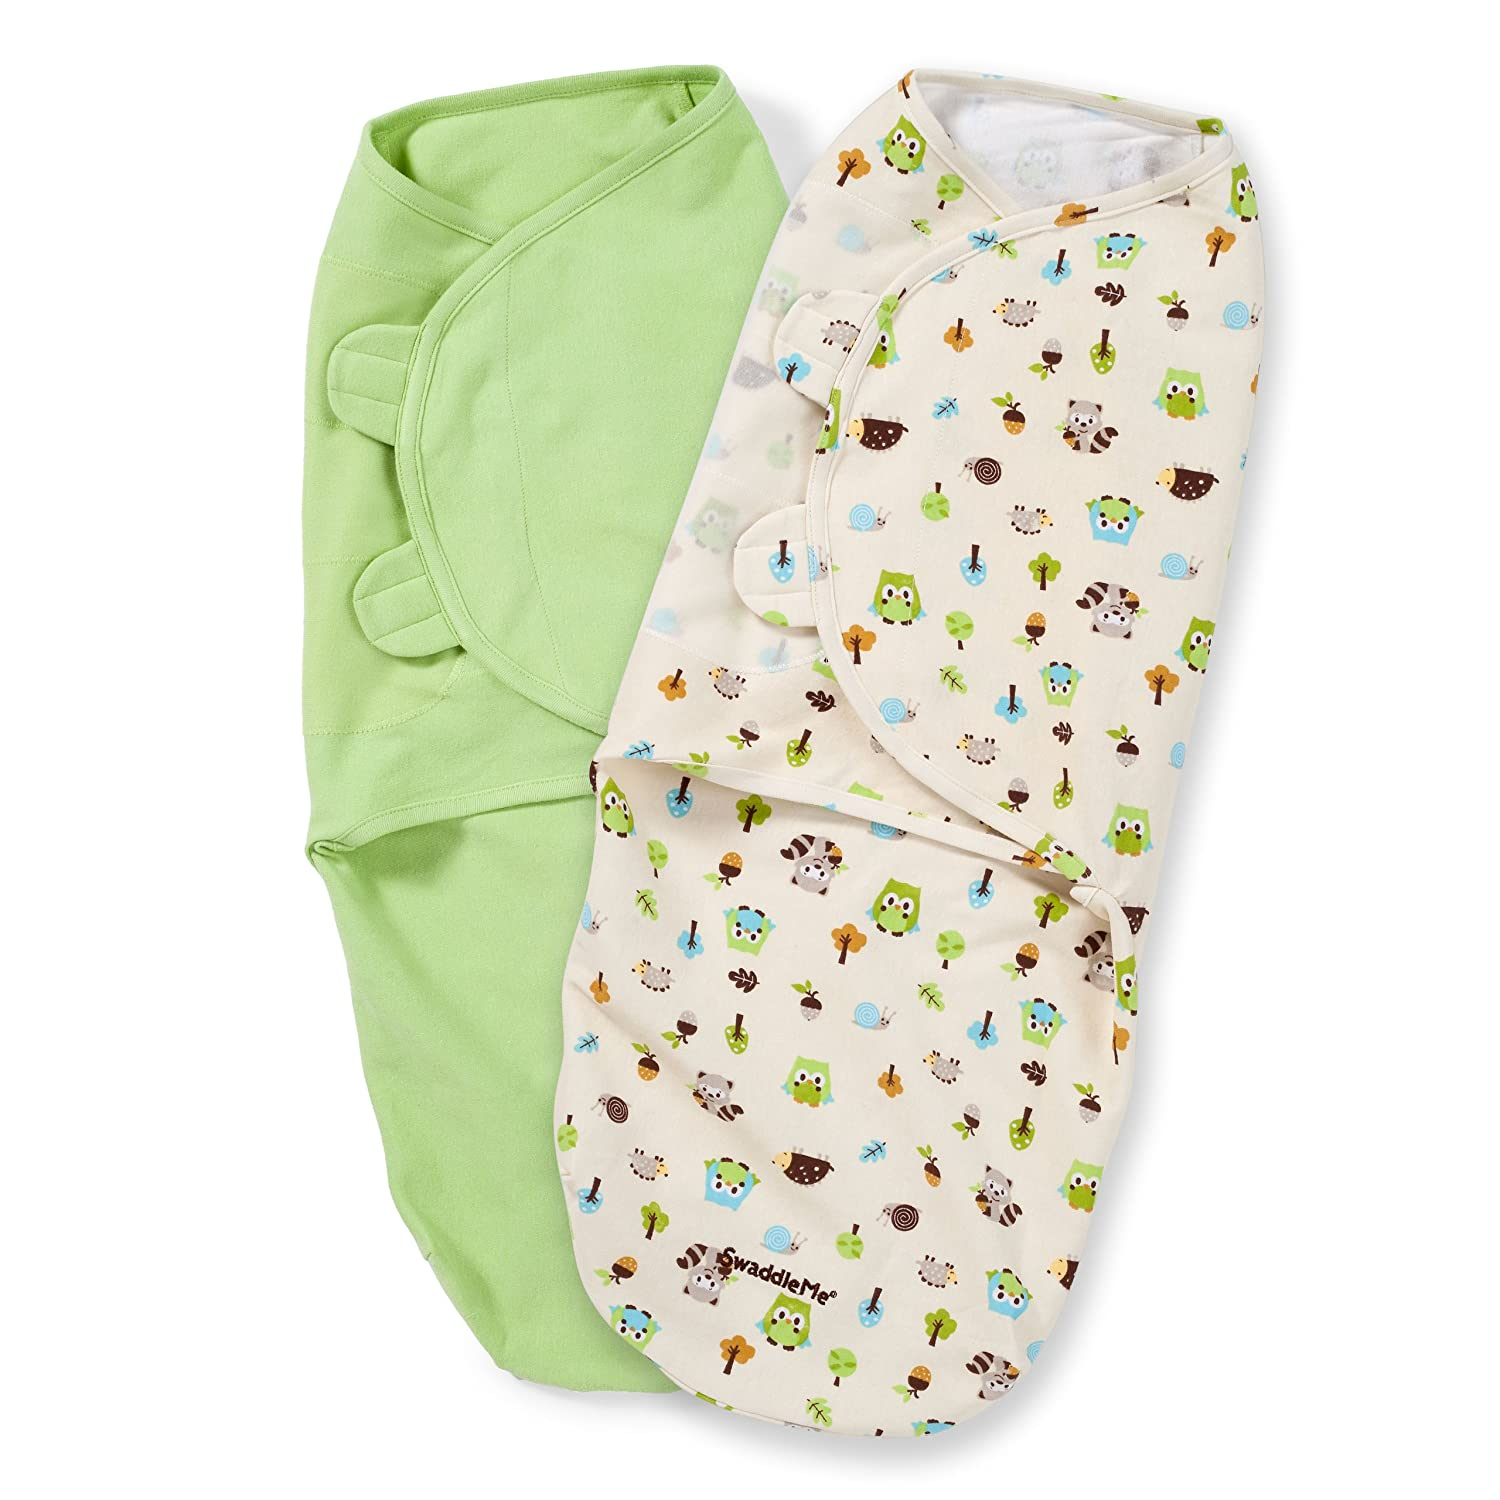 Baby Stuff I Love: New Baby Products